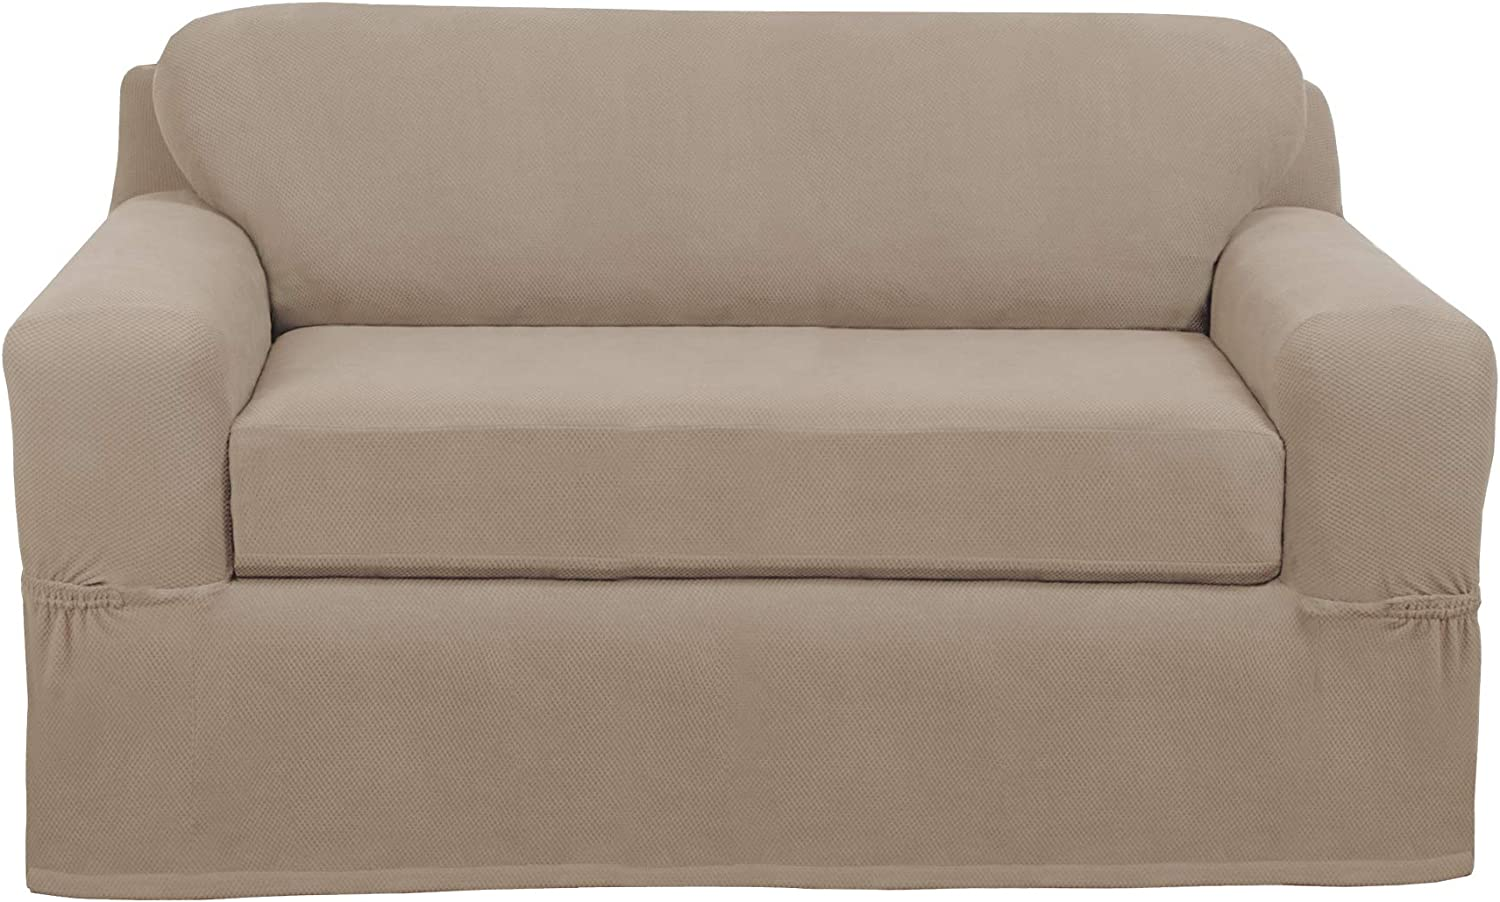 MAYTEX Pixel Ultra Soft Stretch 2 Piece Furniture Cover Loveseat Slipcover, Sand